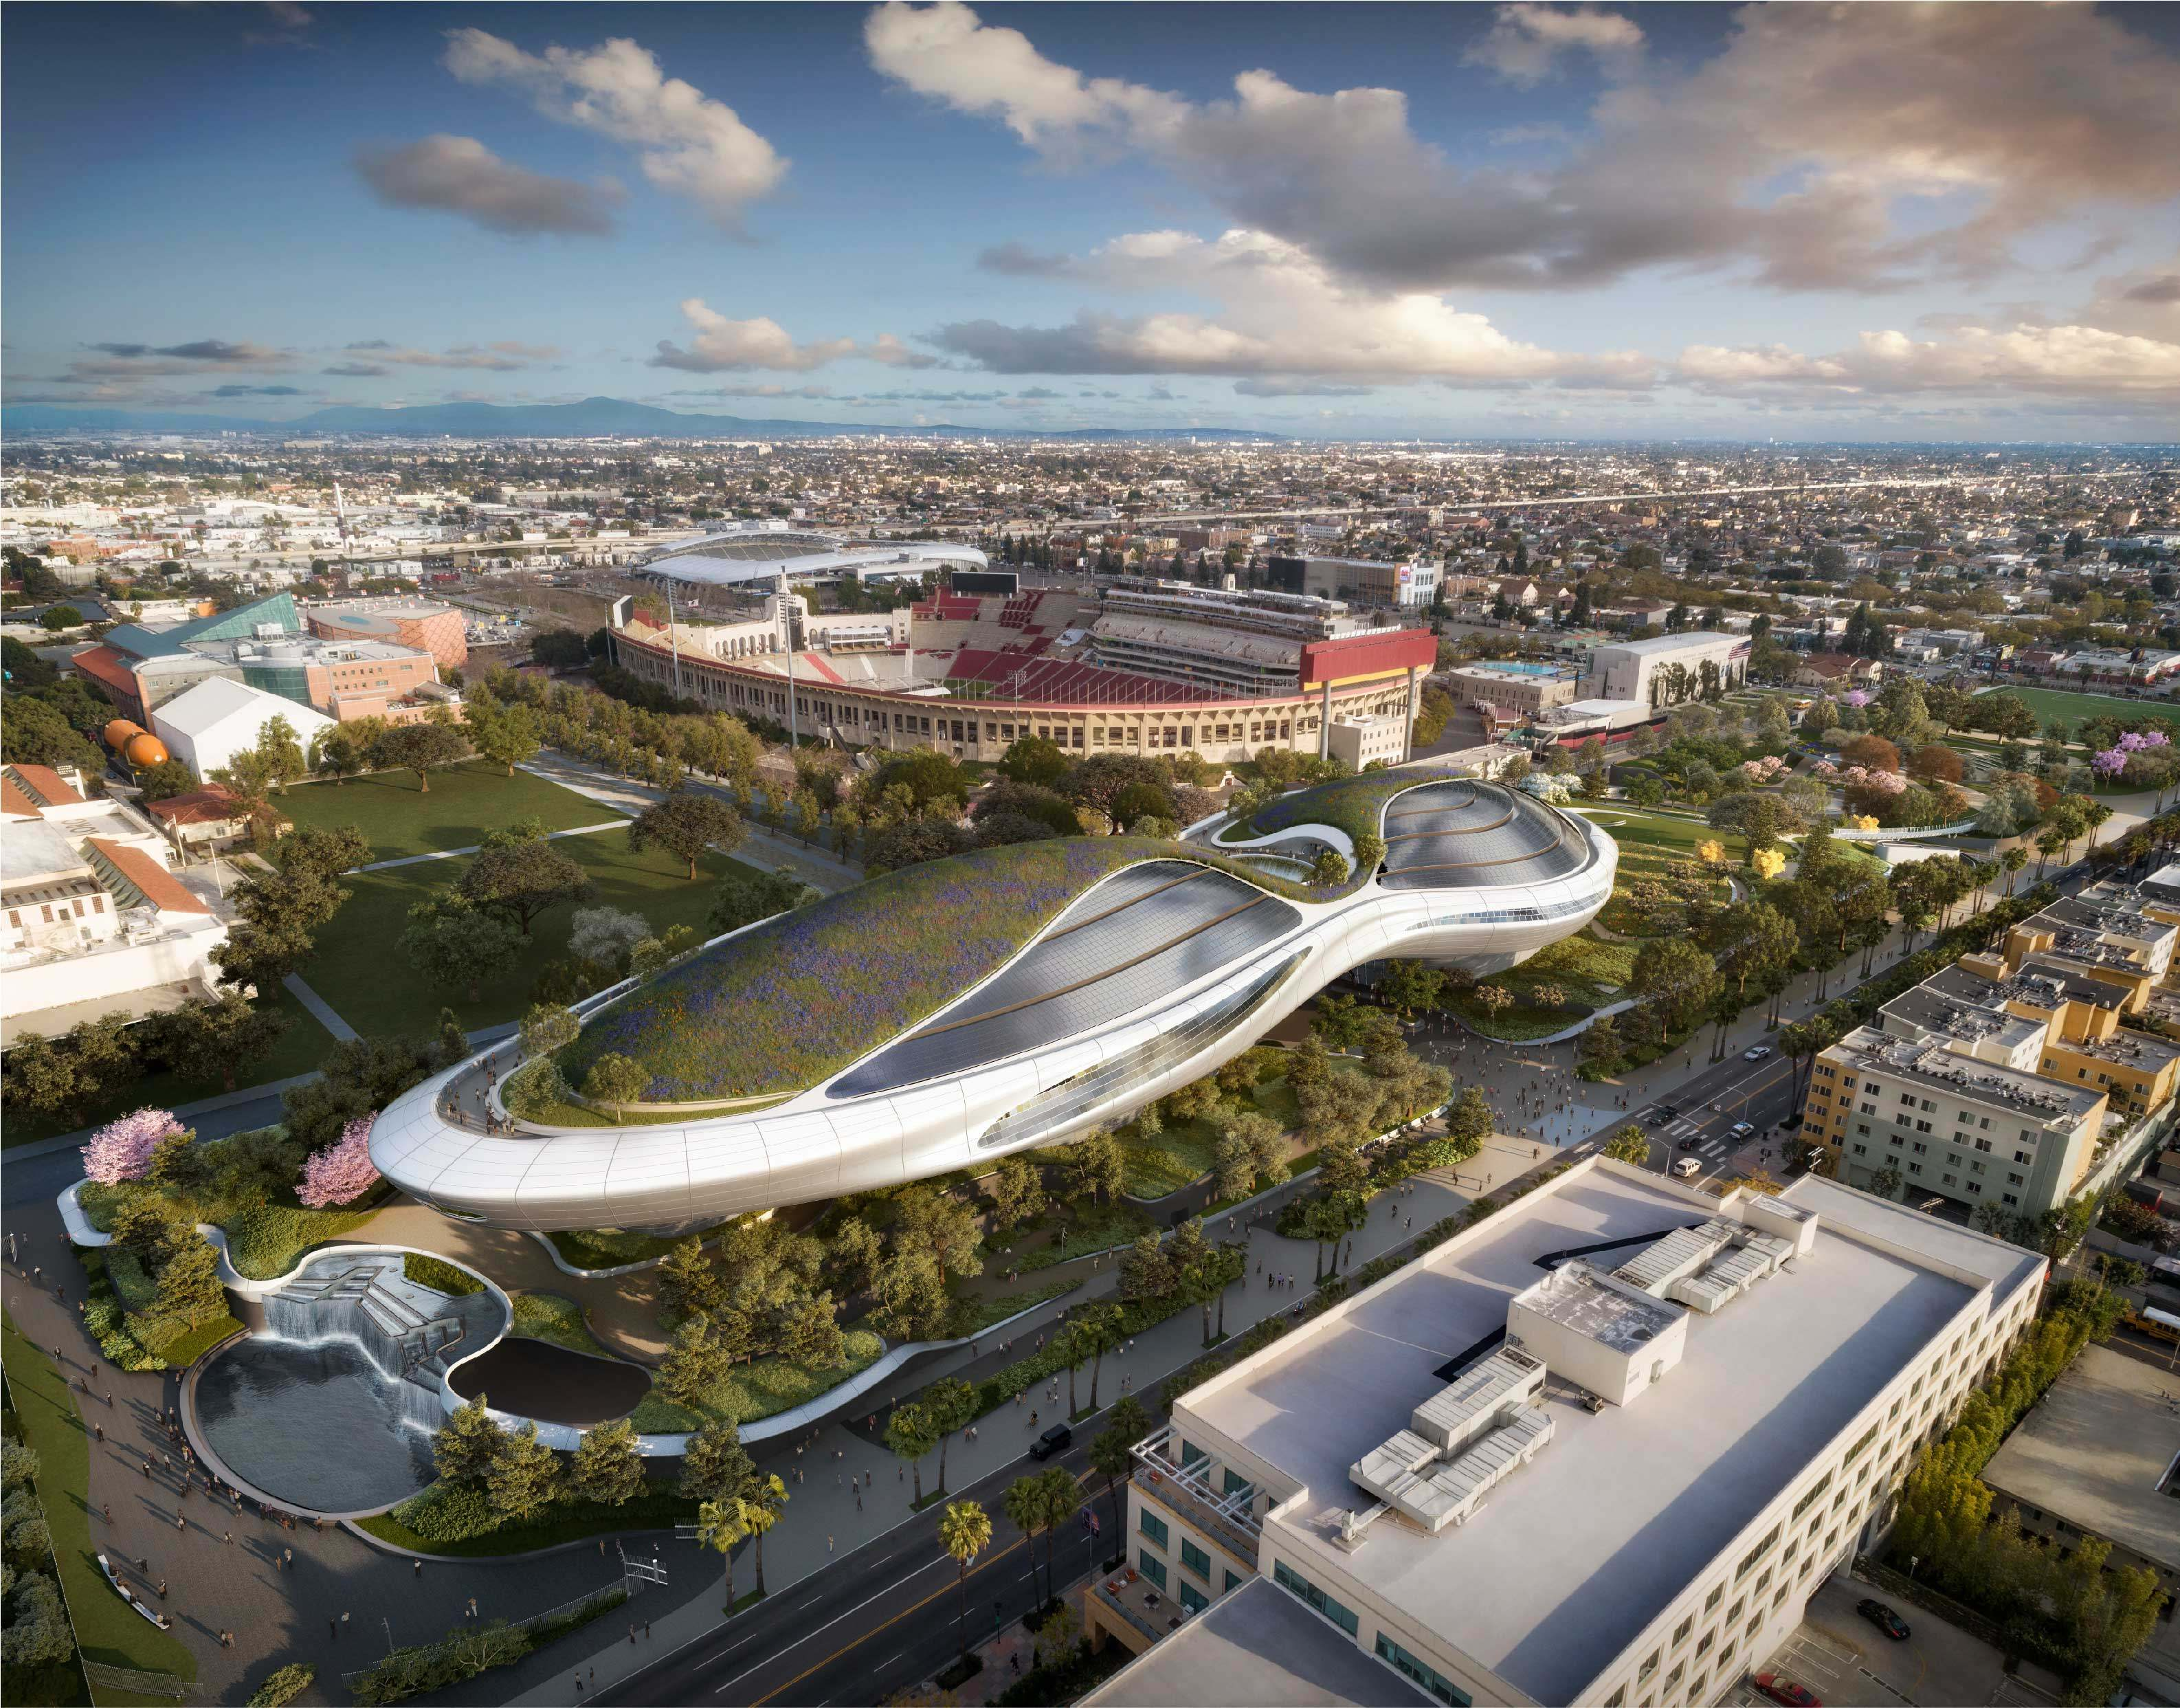 The Lucas Museum of Narrative Art is one of five exciting projects we're looking forward to in 2021